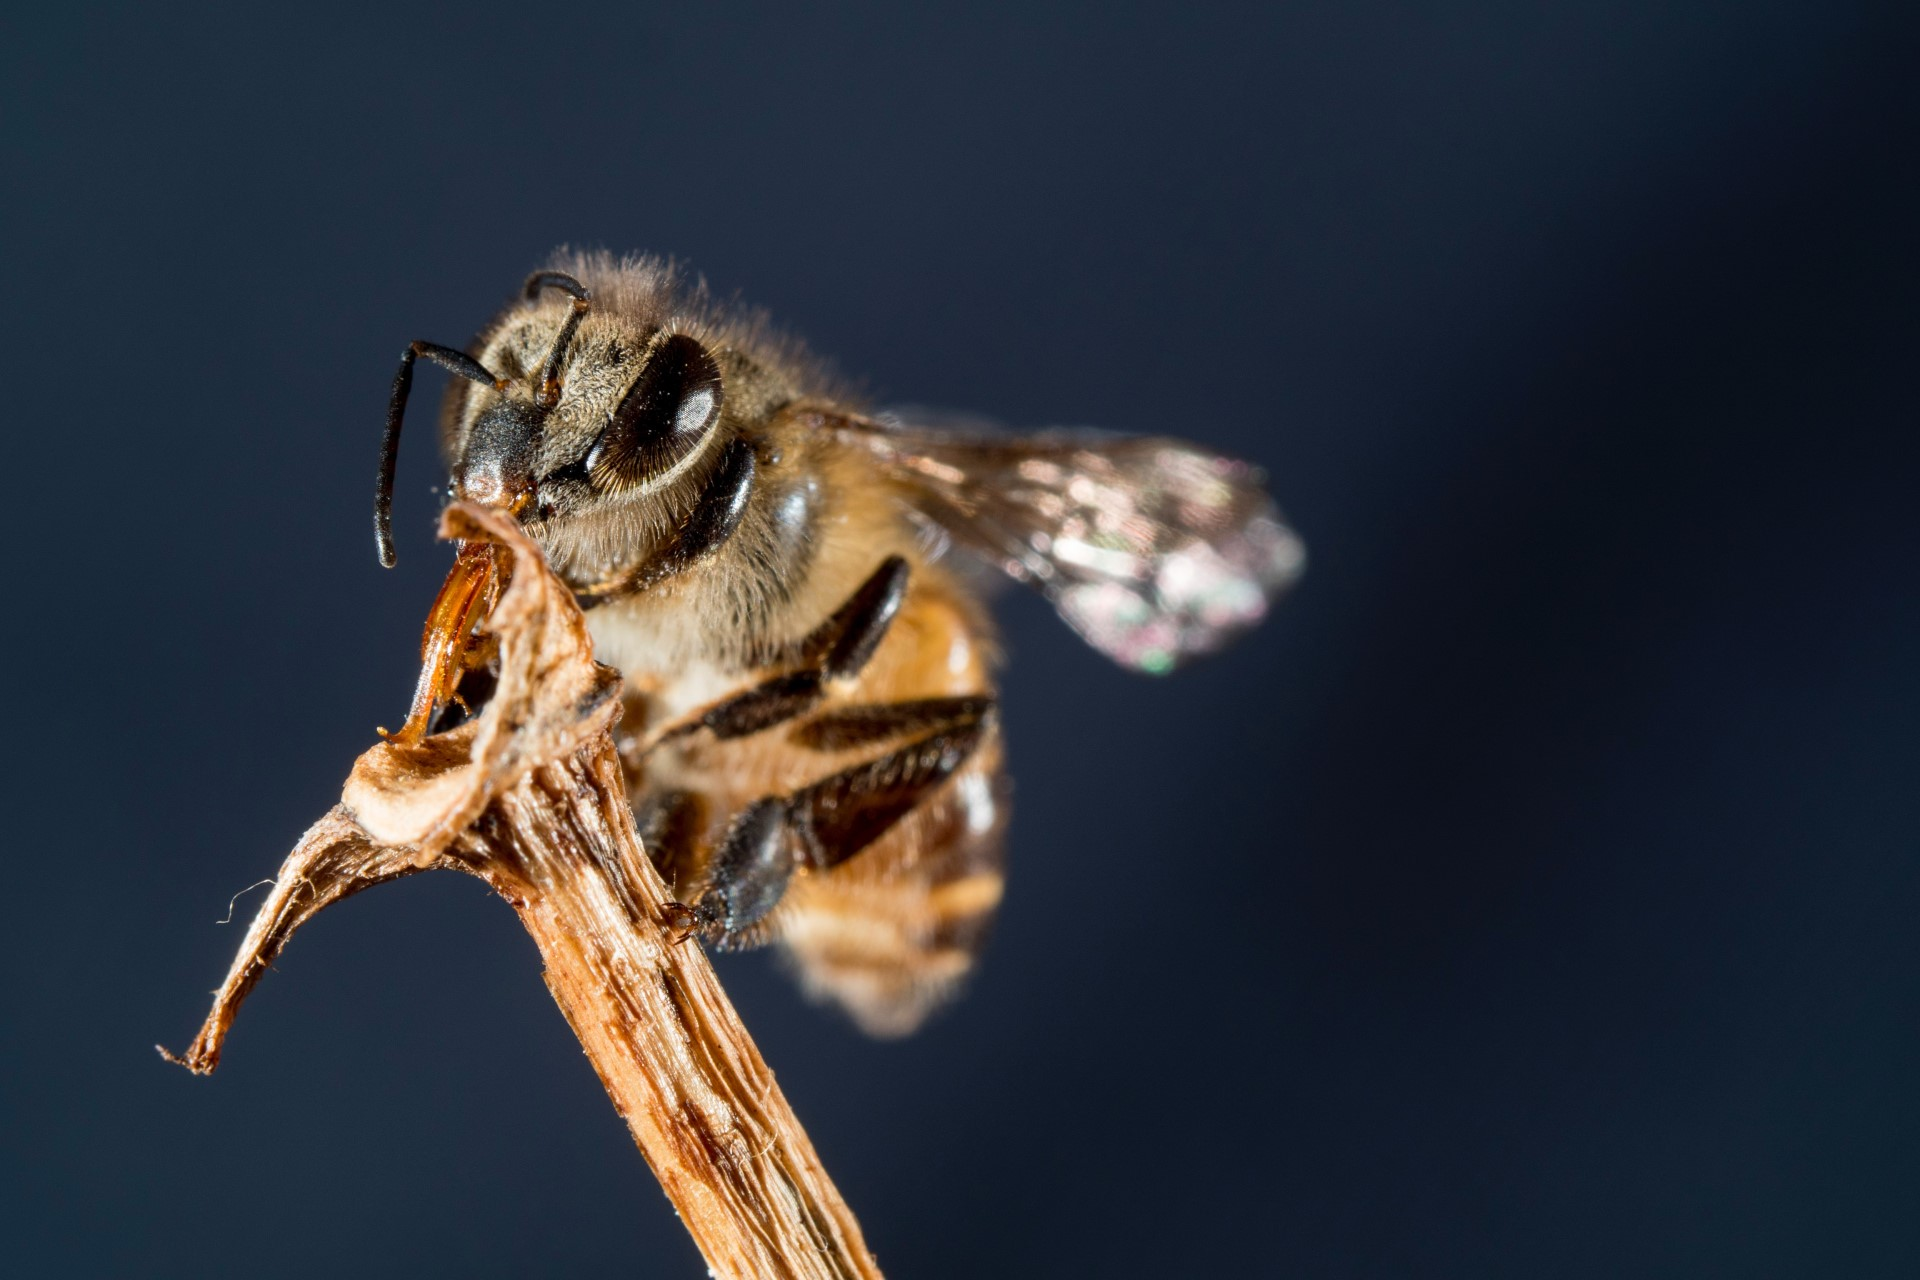 Beyond the Honeybee: Fighting of Behalf of Pollinators